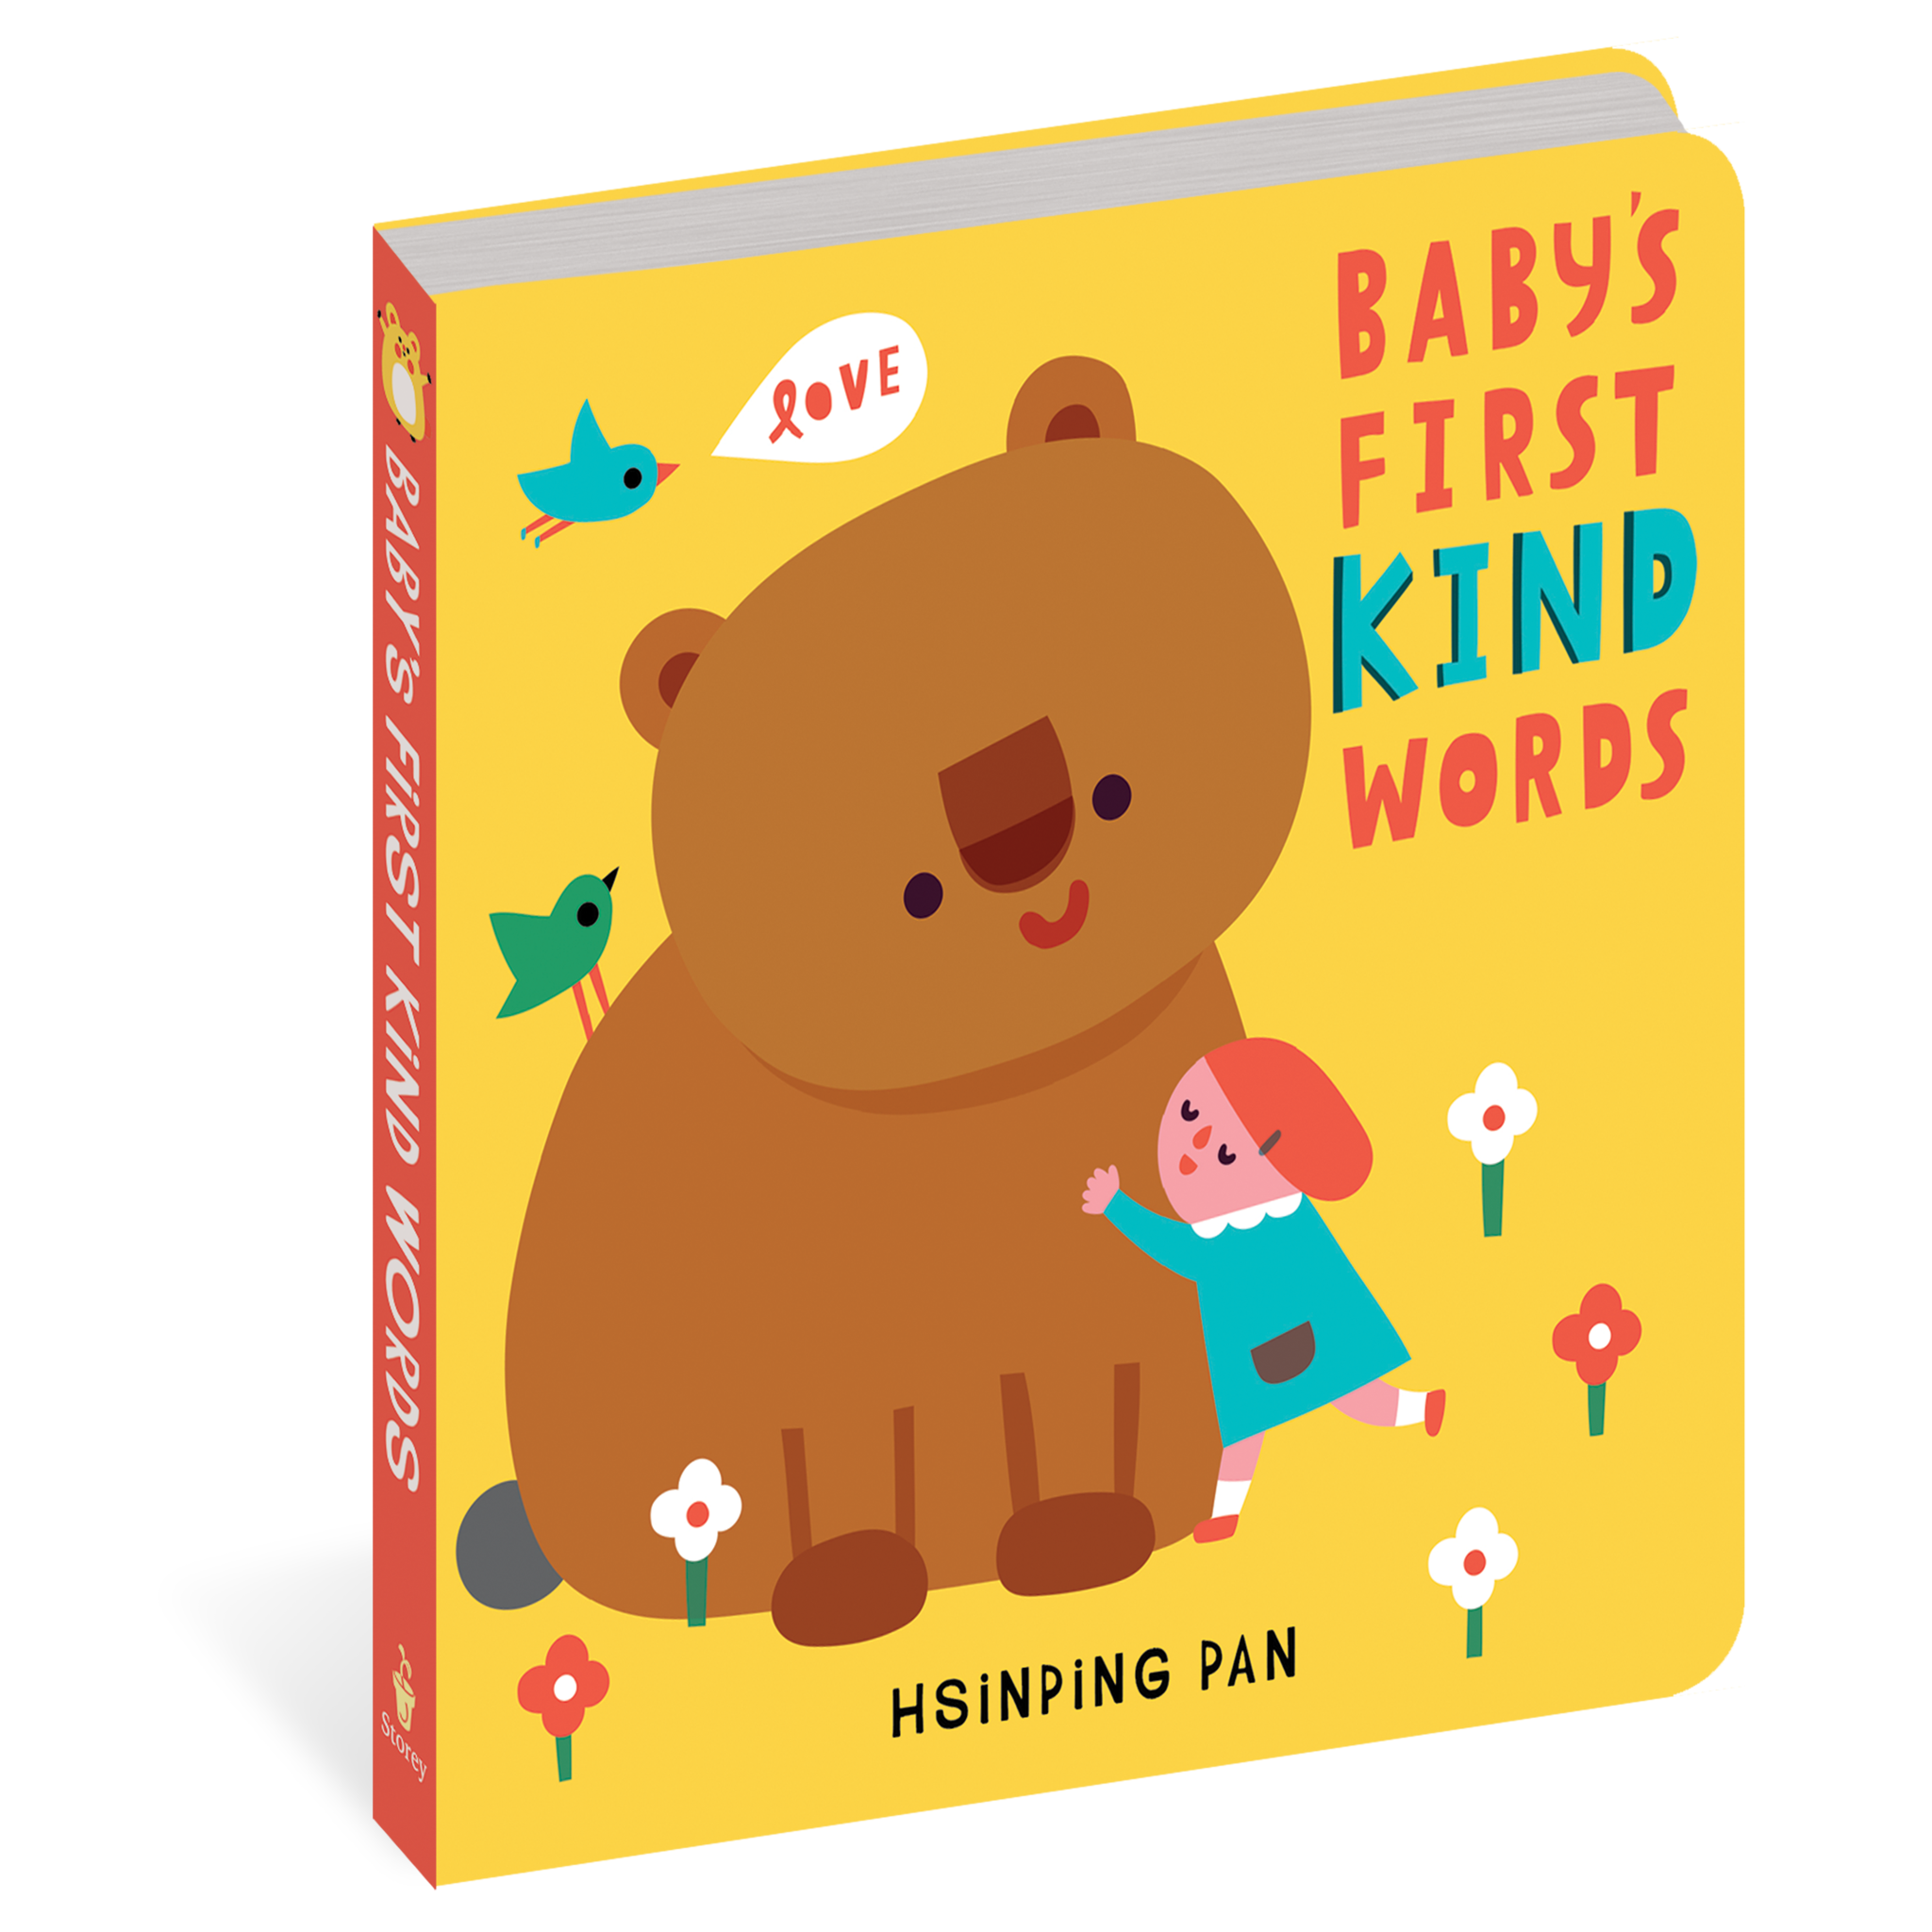 workman publishing Baby's First Kind Words